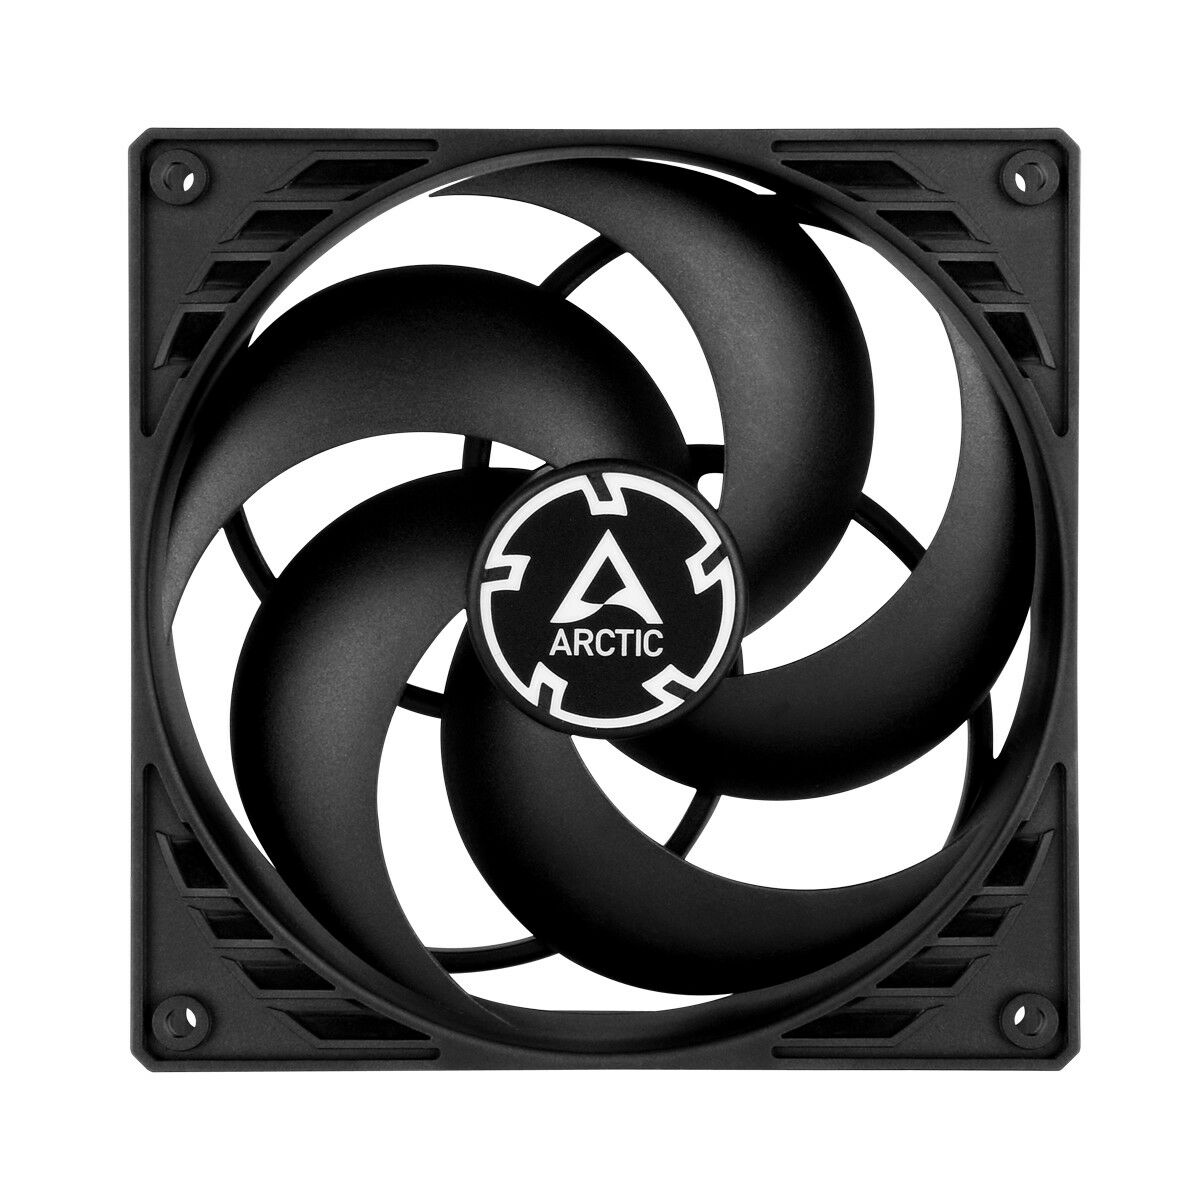 Details about Arctic P14 PWM 14cm 140mm Pressure Optimised Computer PC Case  Fan with PWM